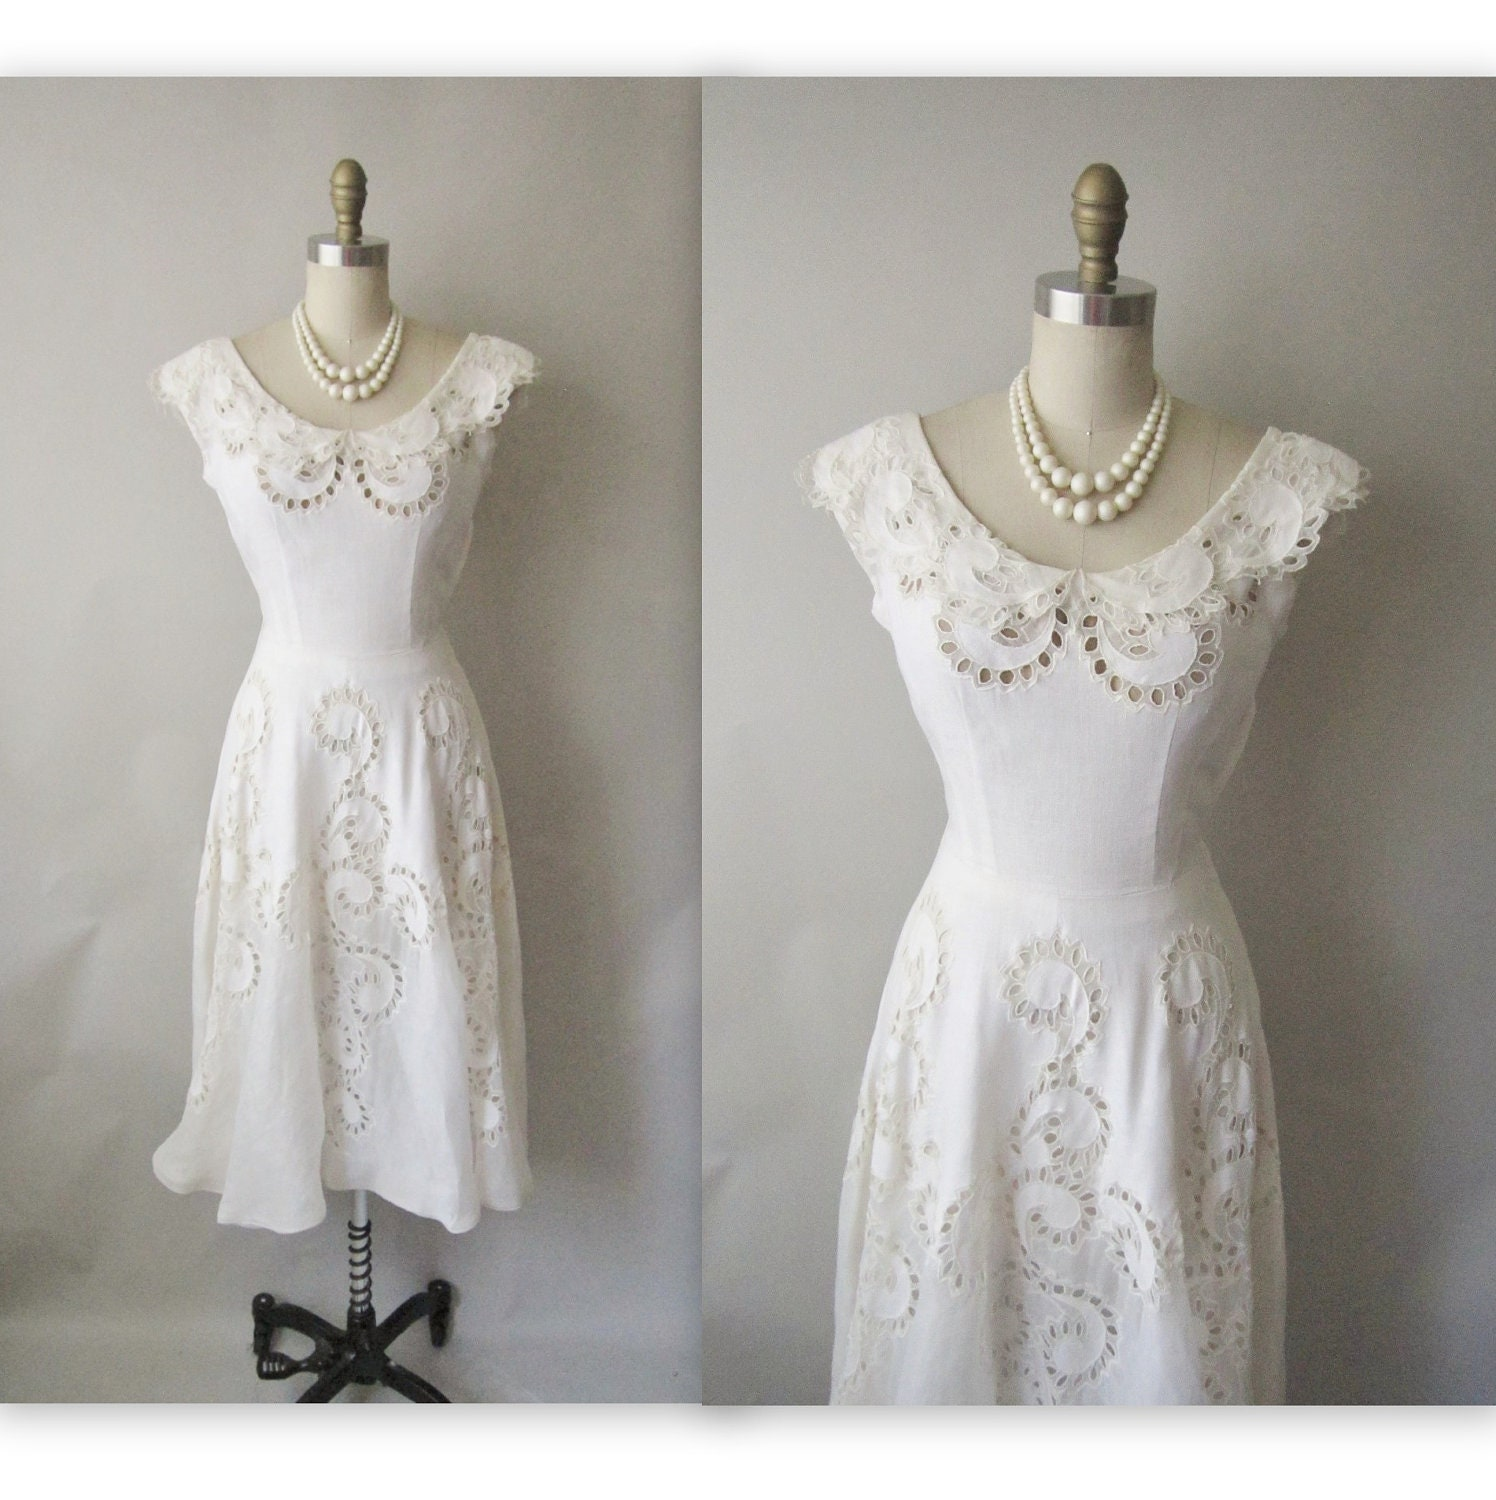 Best undergarments for wedding dress gown and dress gallery for Undergarments for wedding dress